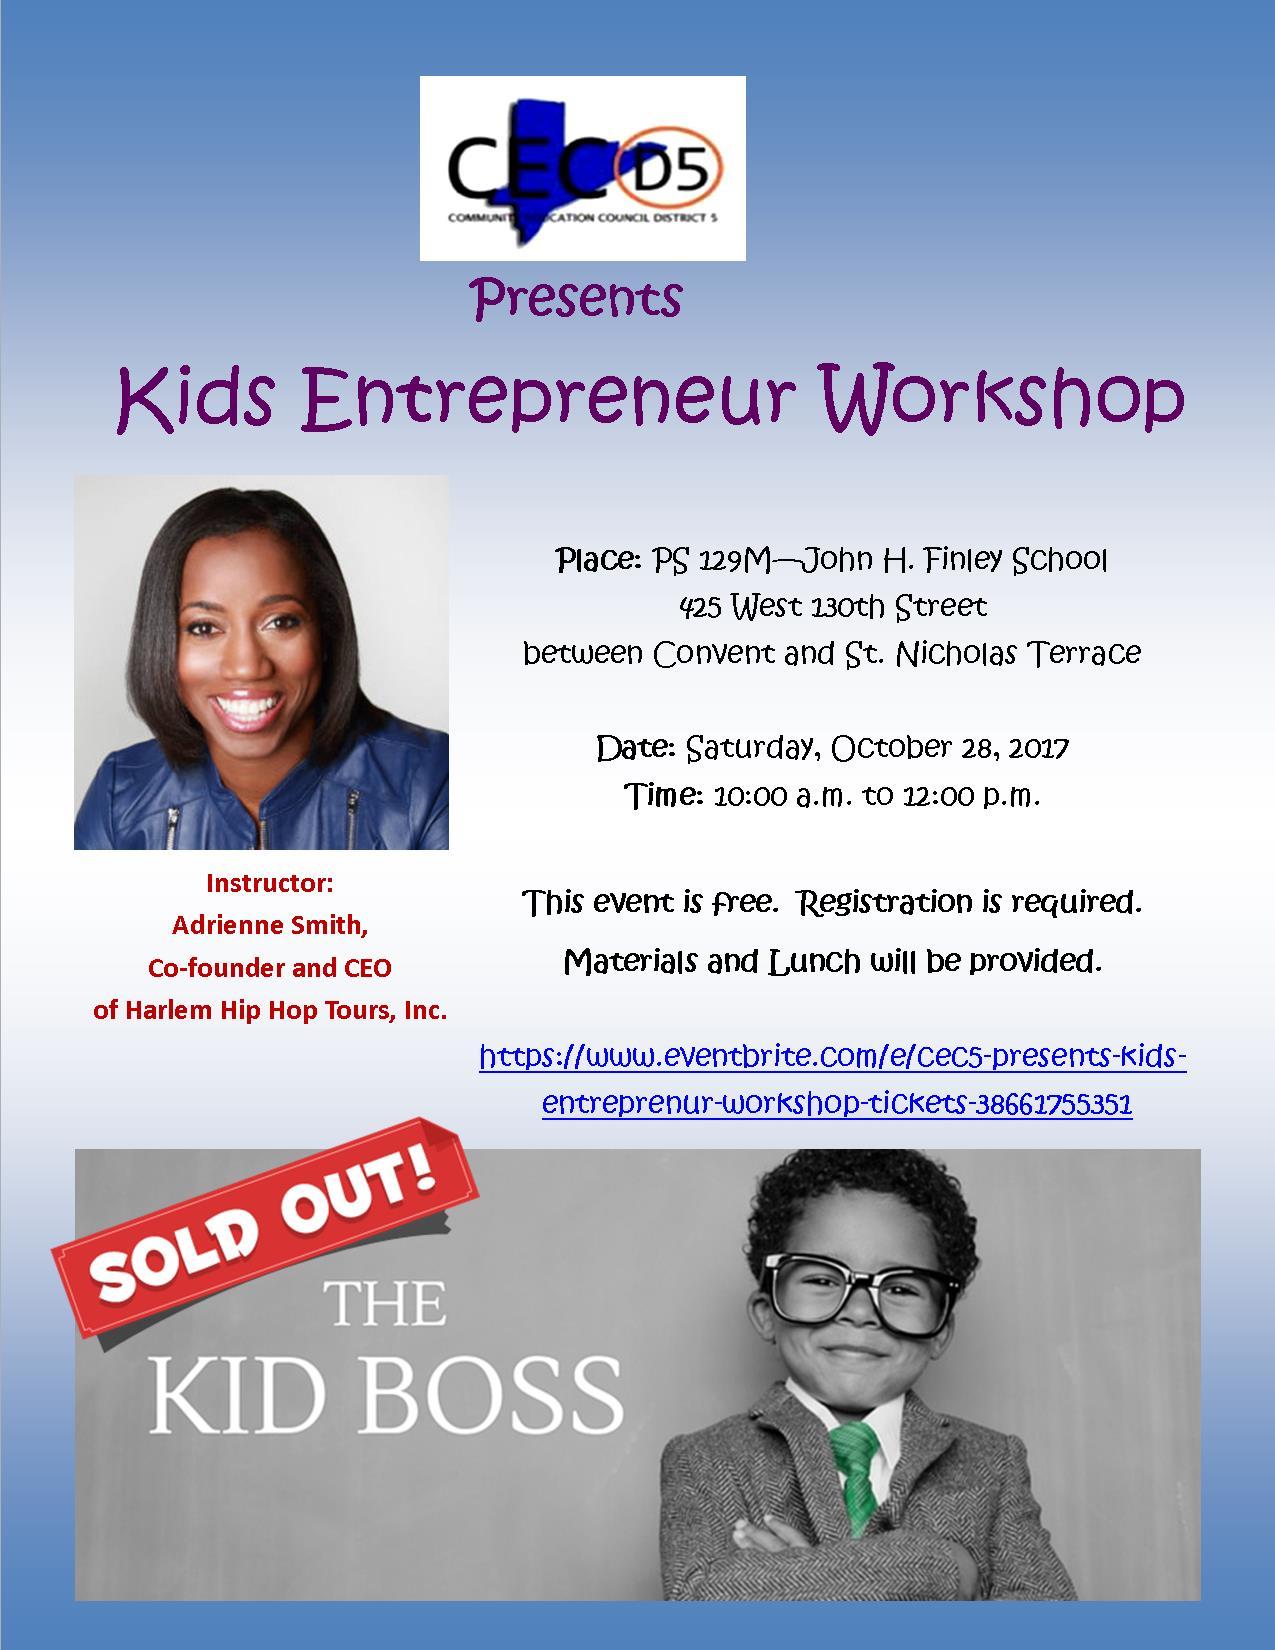 Kids Entreprenur Workshop